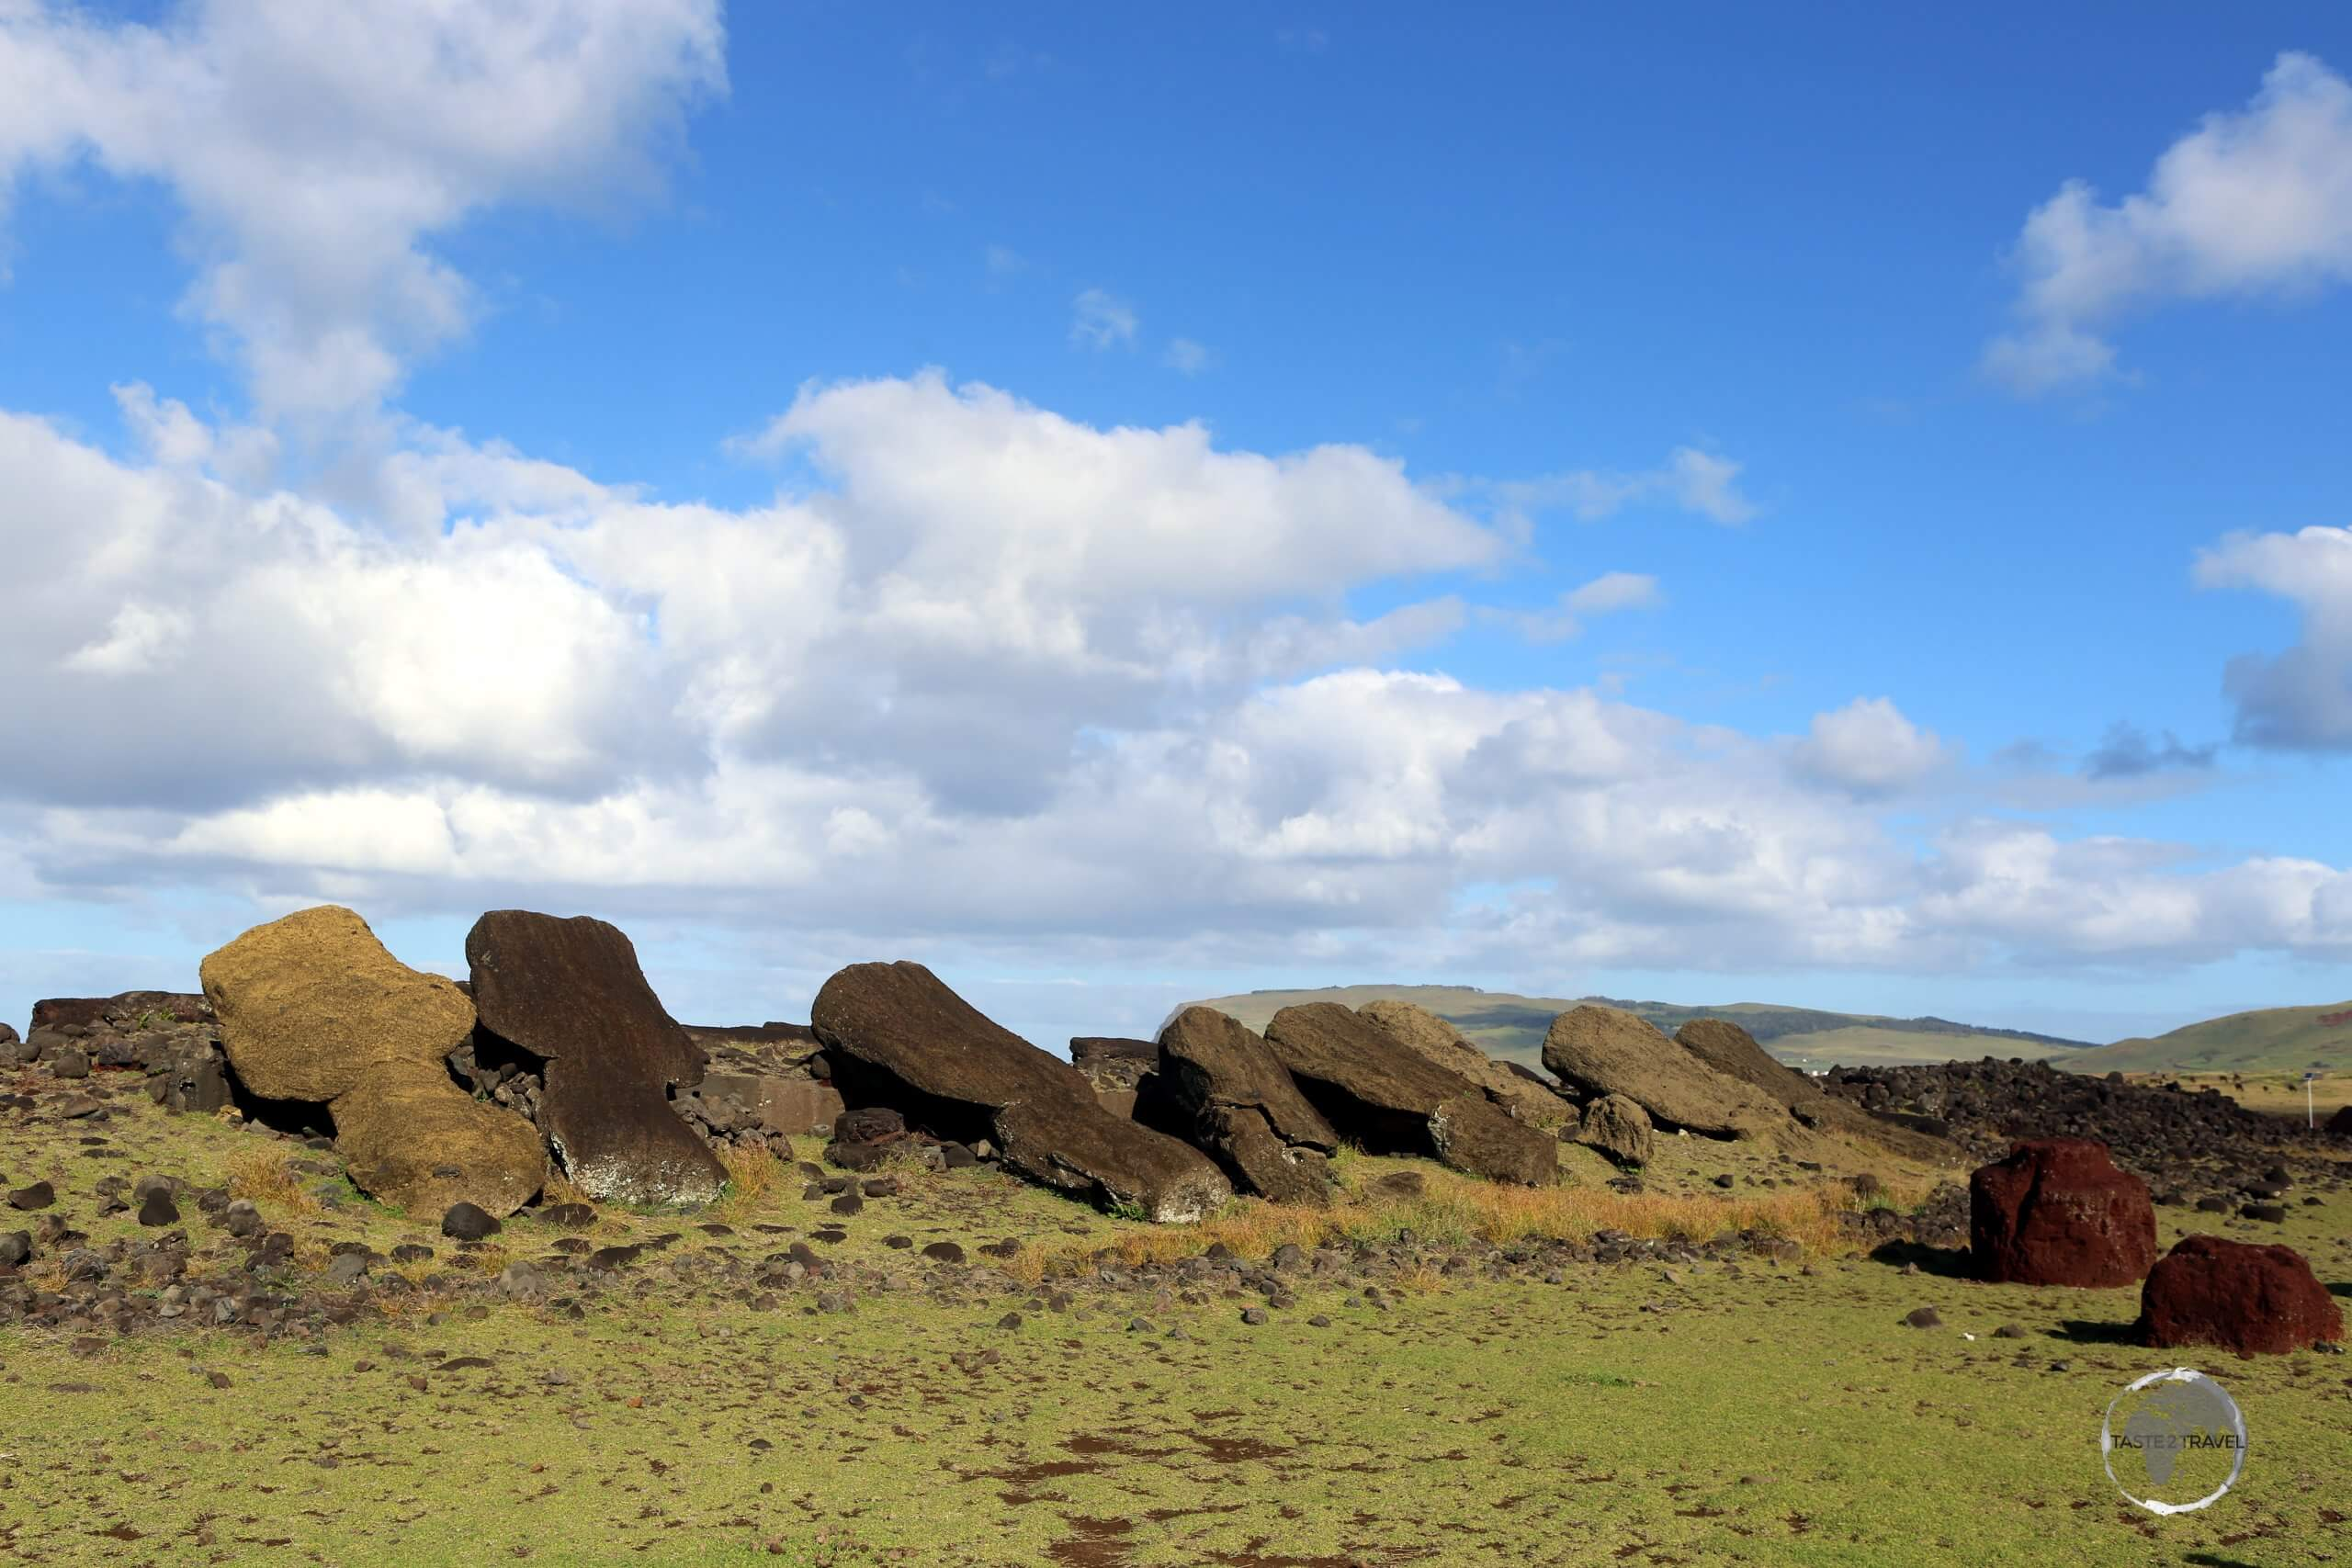 A view of the 13 fallen moai at Ahu Akahanga. Believed to be the burial place of the first king of the Rapa Nui people, the statues were vandalised during a civil war on the island which led to the end of the Rapa Nui civilisation.